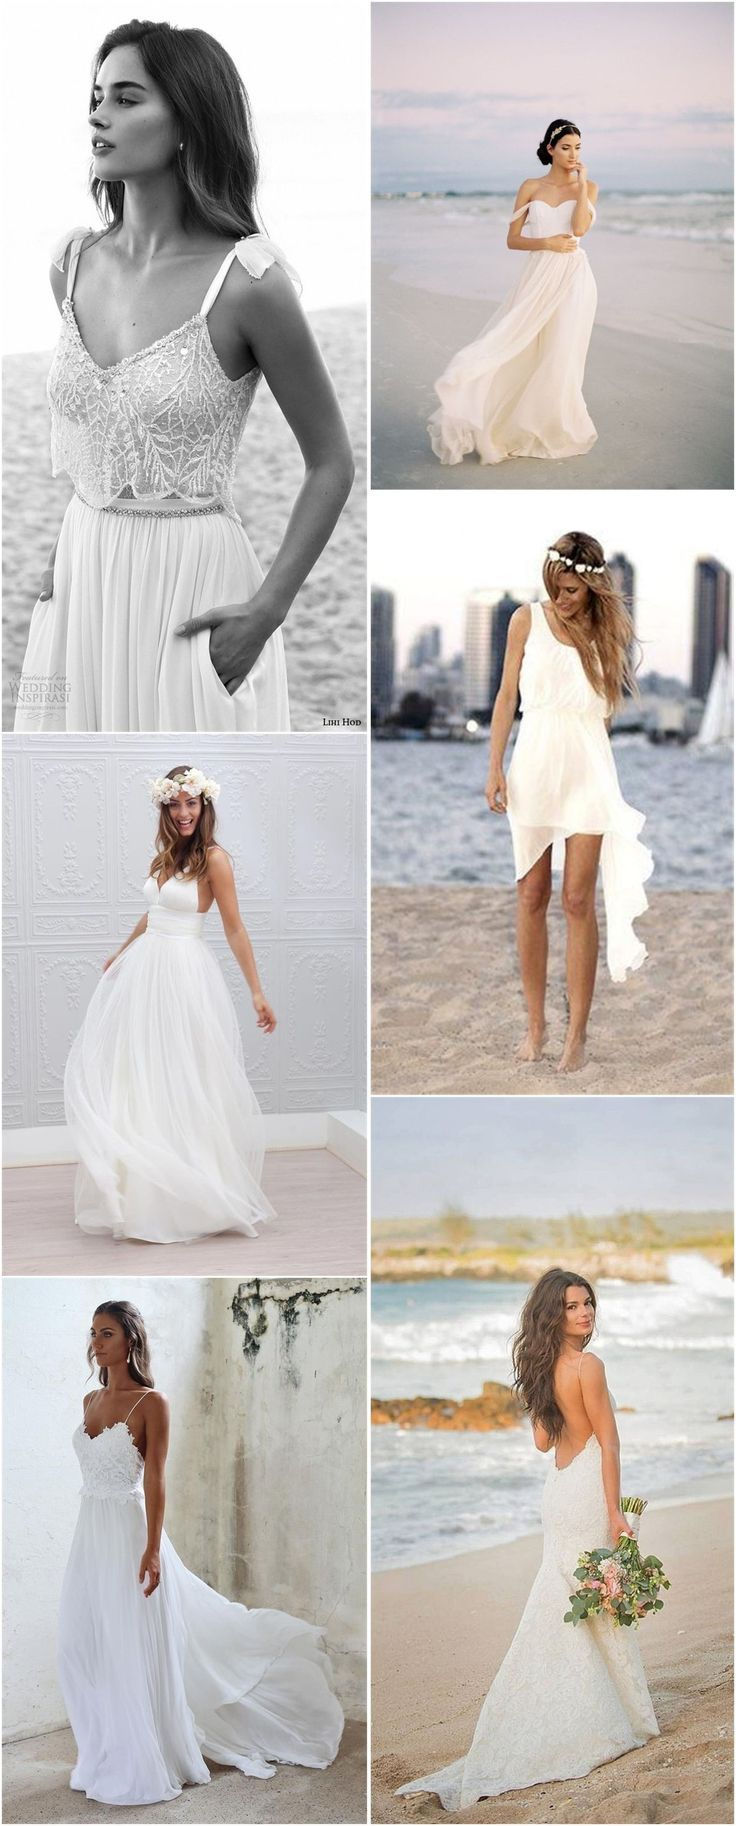 421 best Destination Weddings images on Pinterest | Beach weddings ...